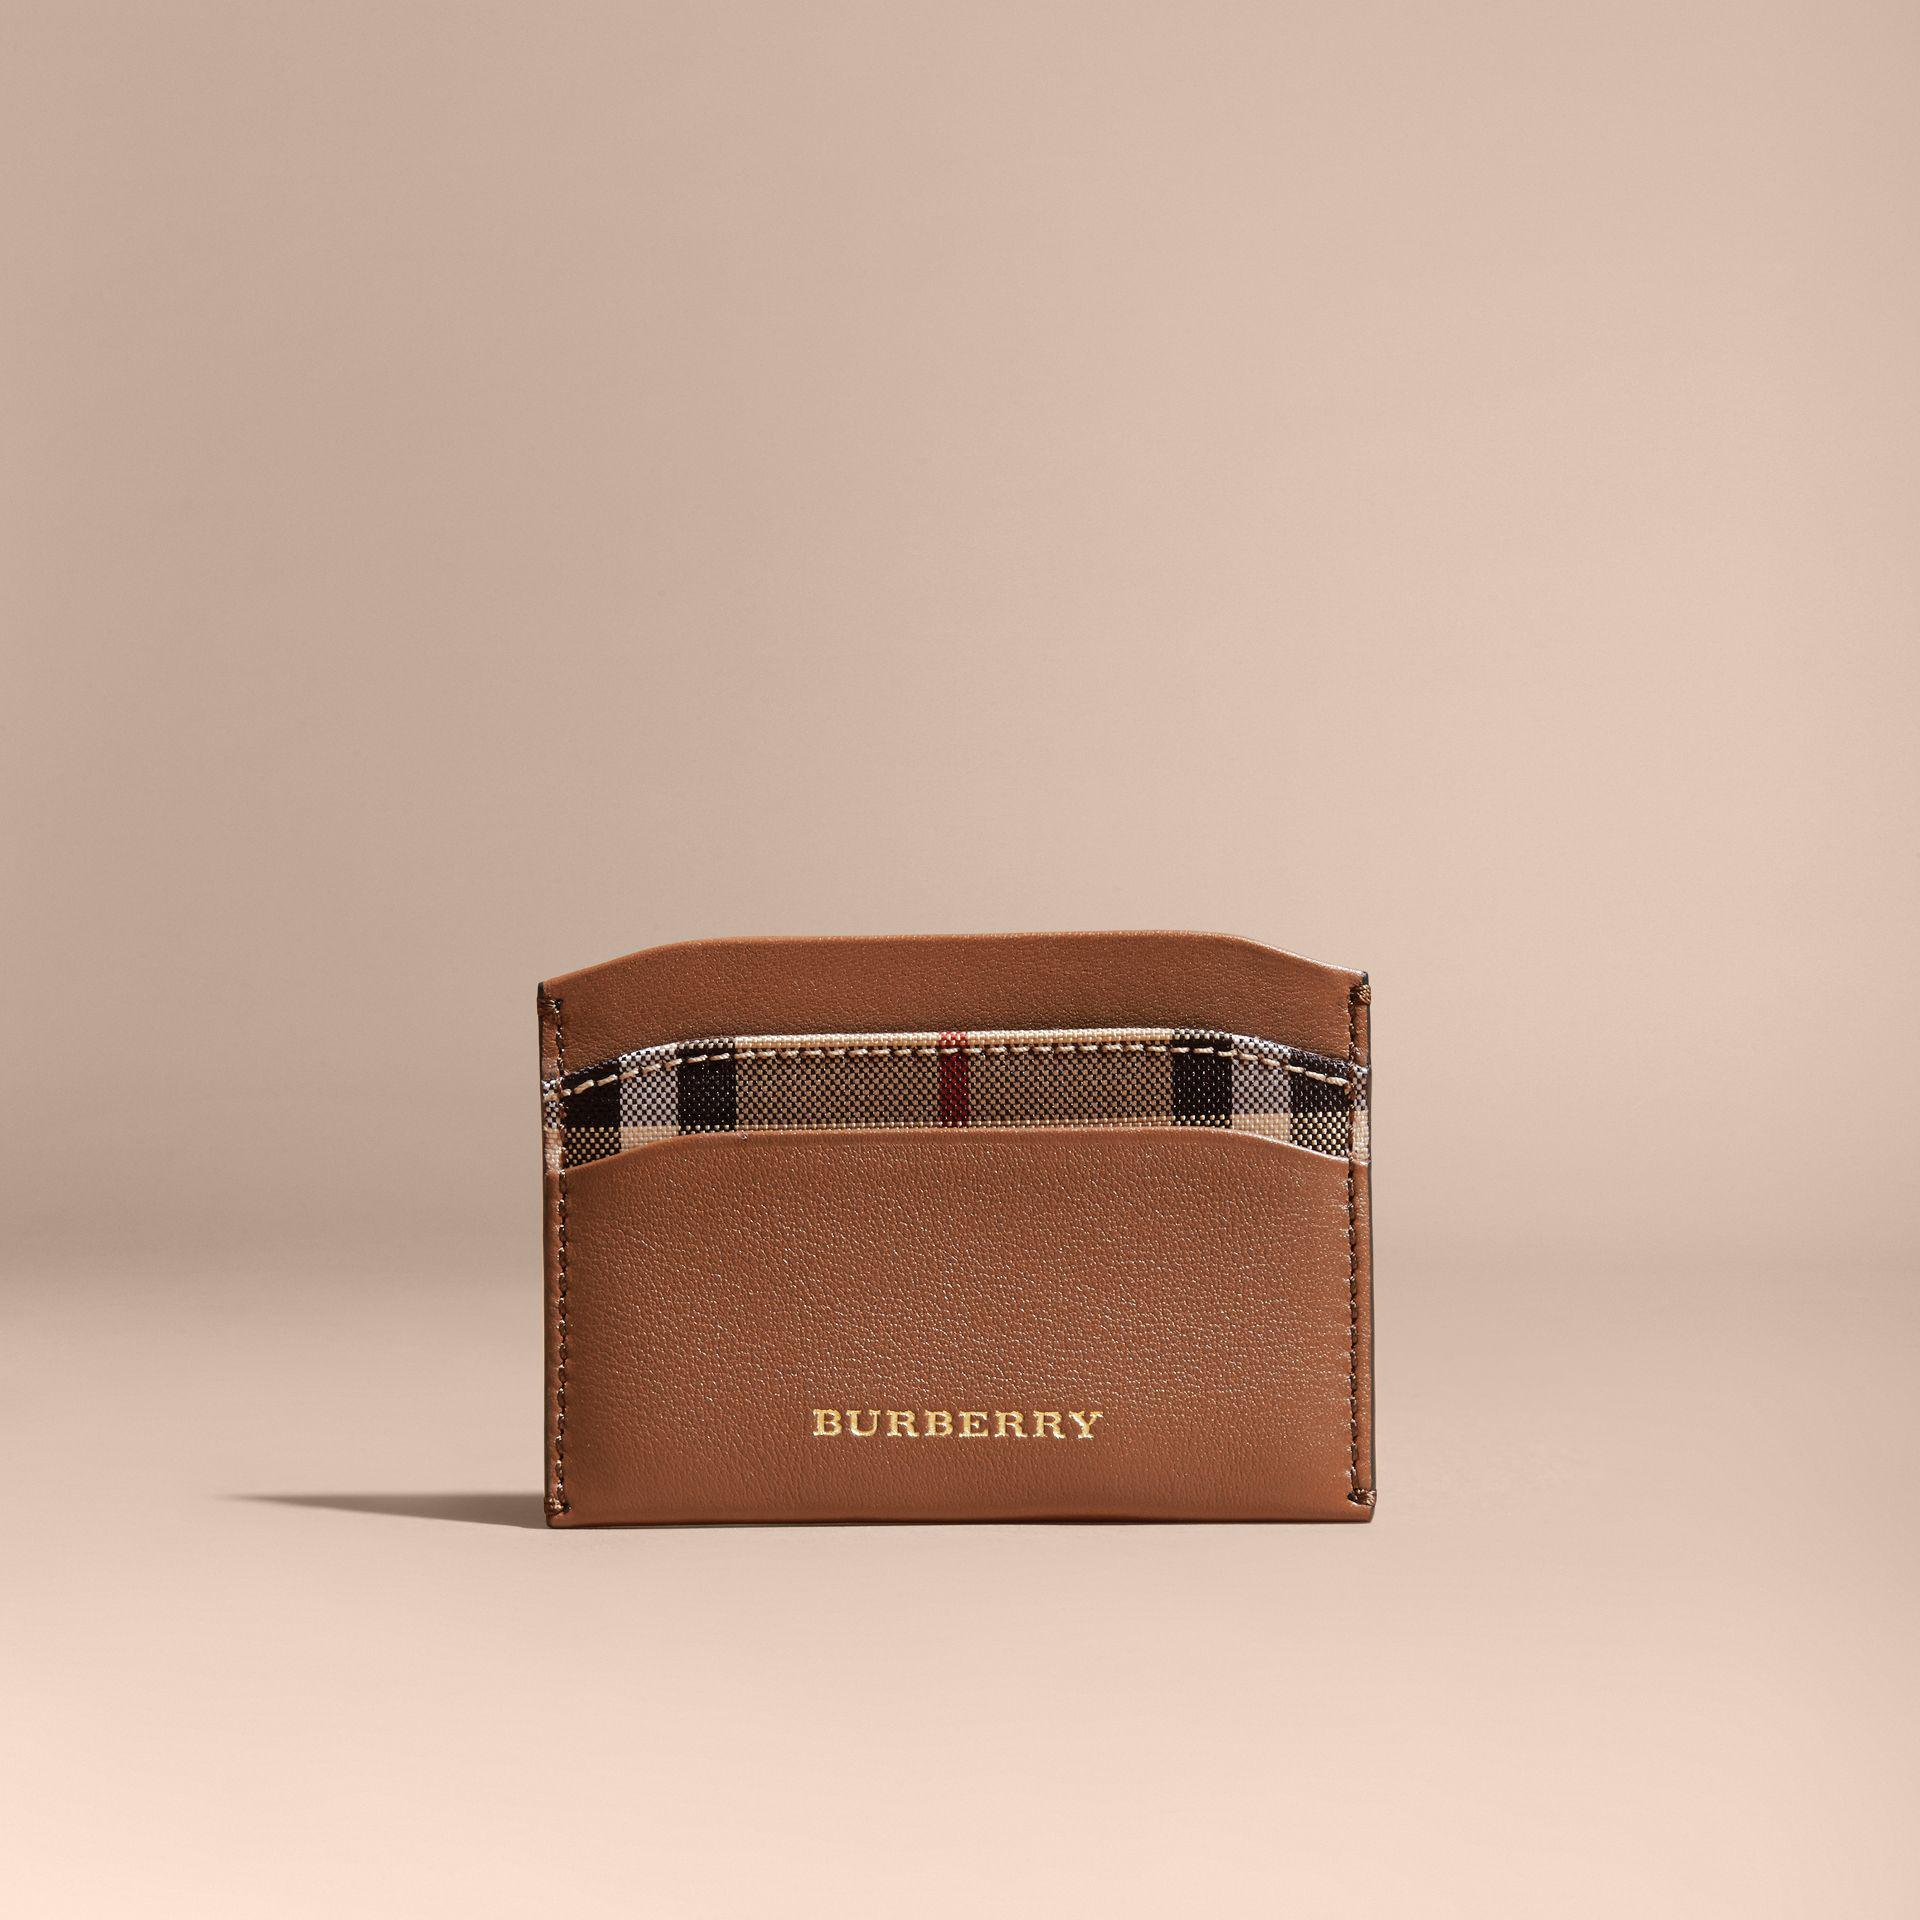 Lyst - Burberry Check And Leather Card Case Tan